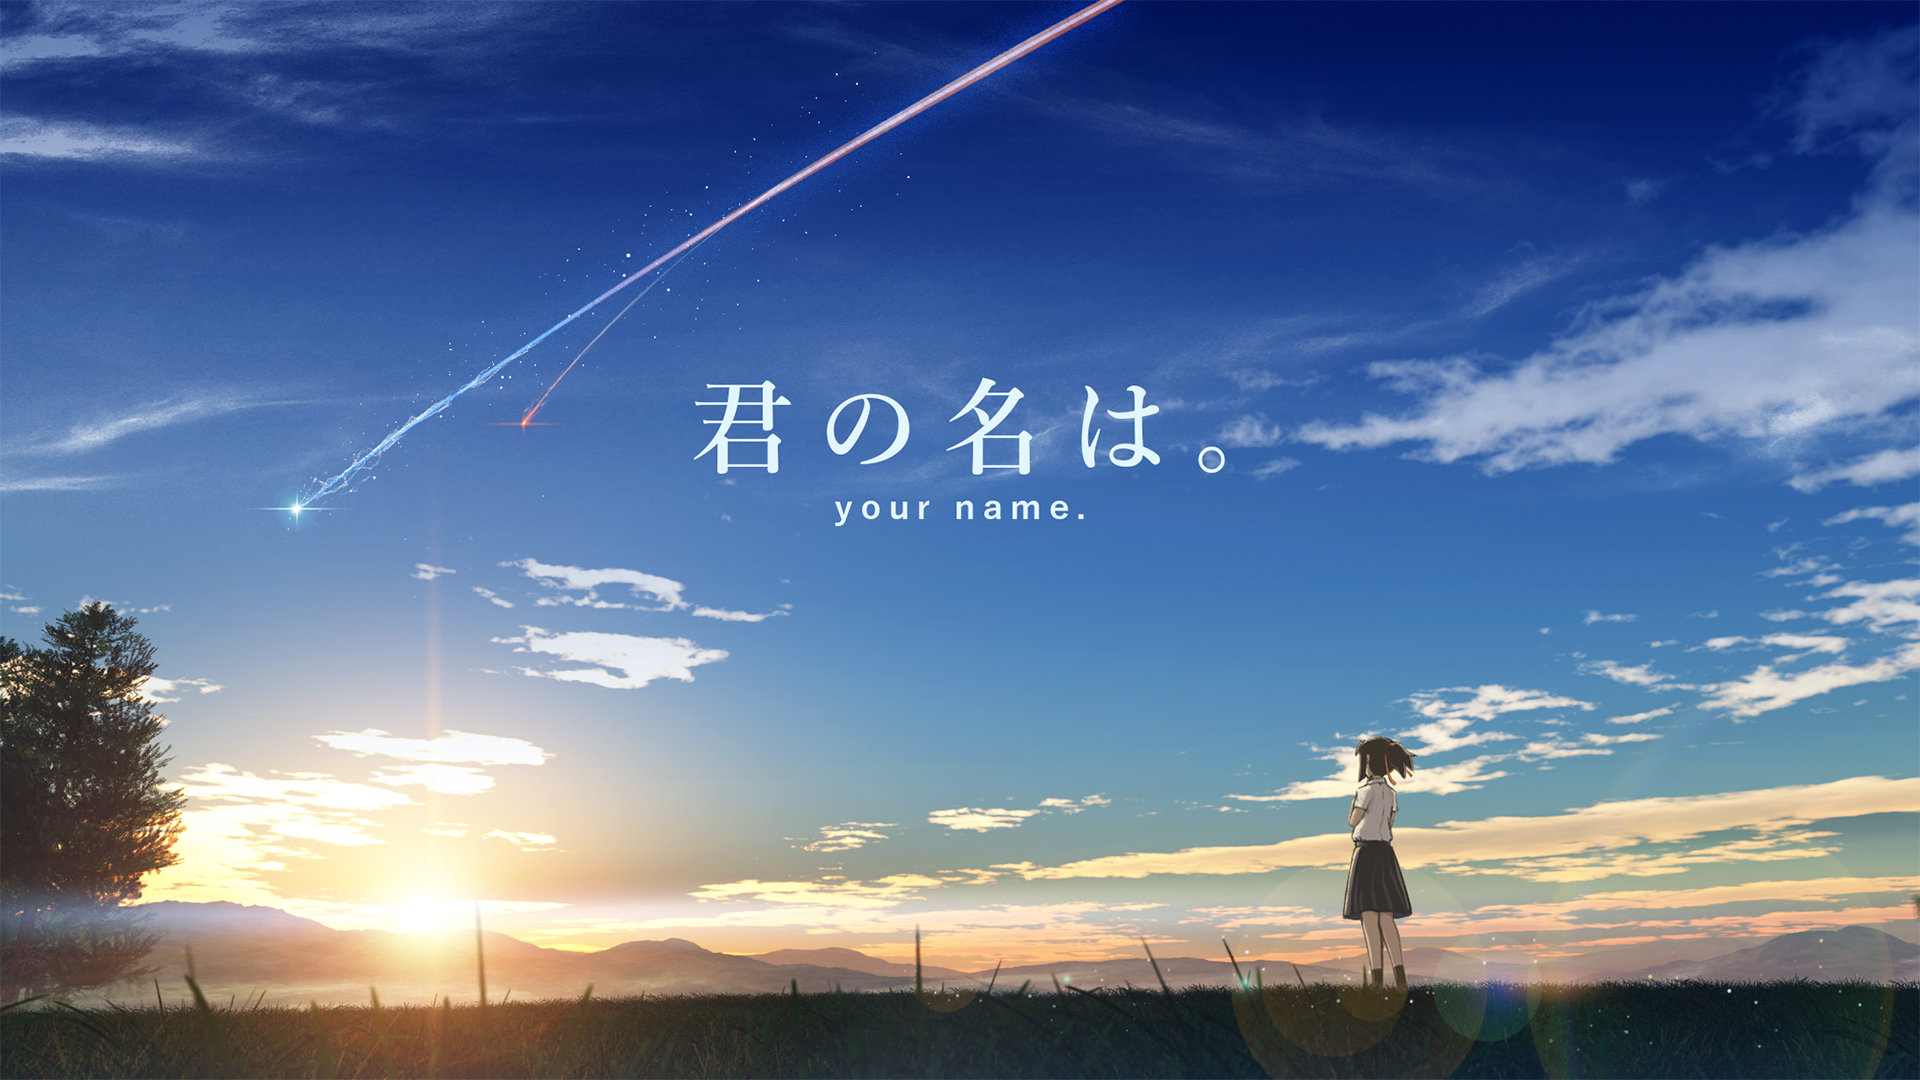 4k Ultra Hd Wallpaper Anime Kimi No Nawa Hd Doraemon